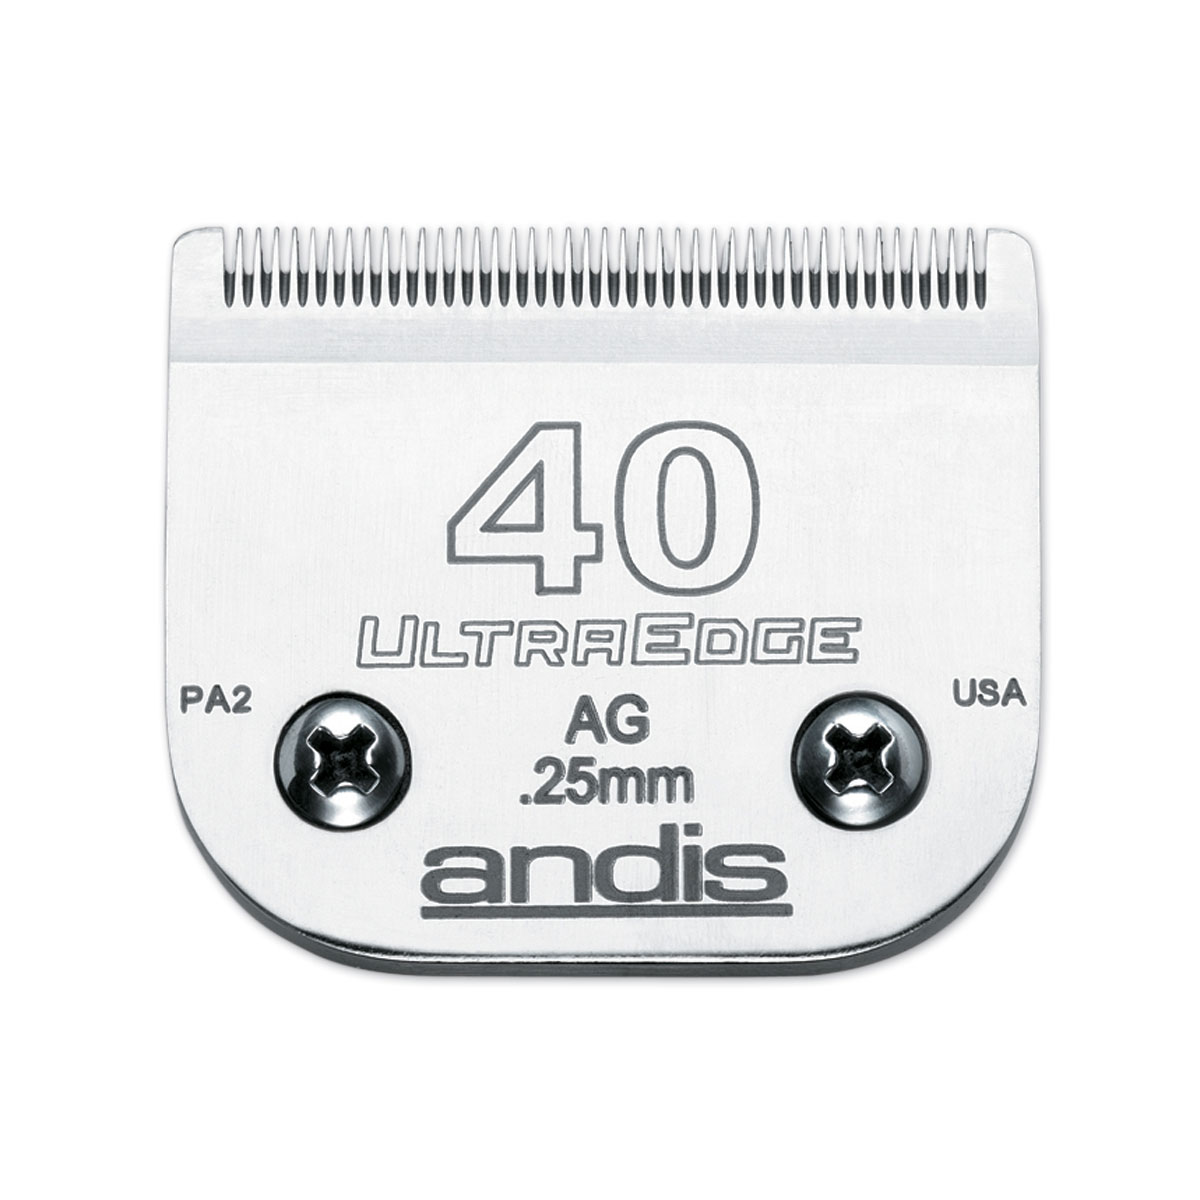 Andis #40 Ultraedge Replacement Clipper Blade